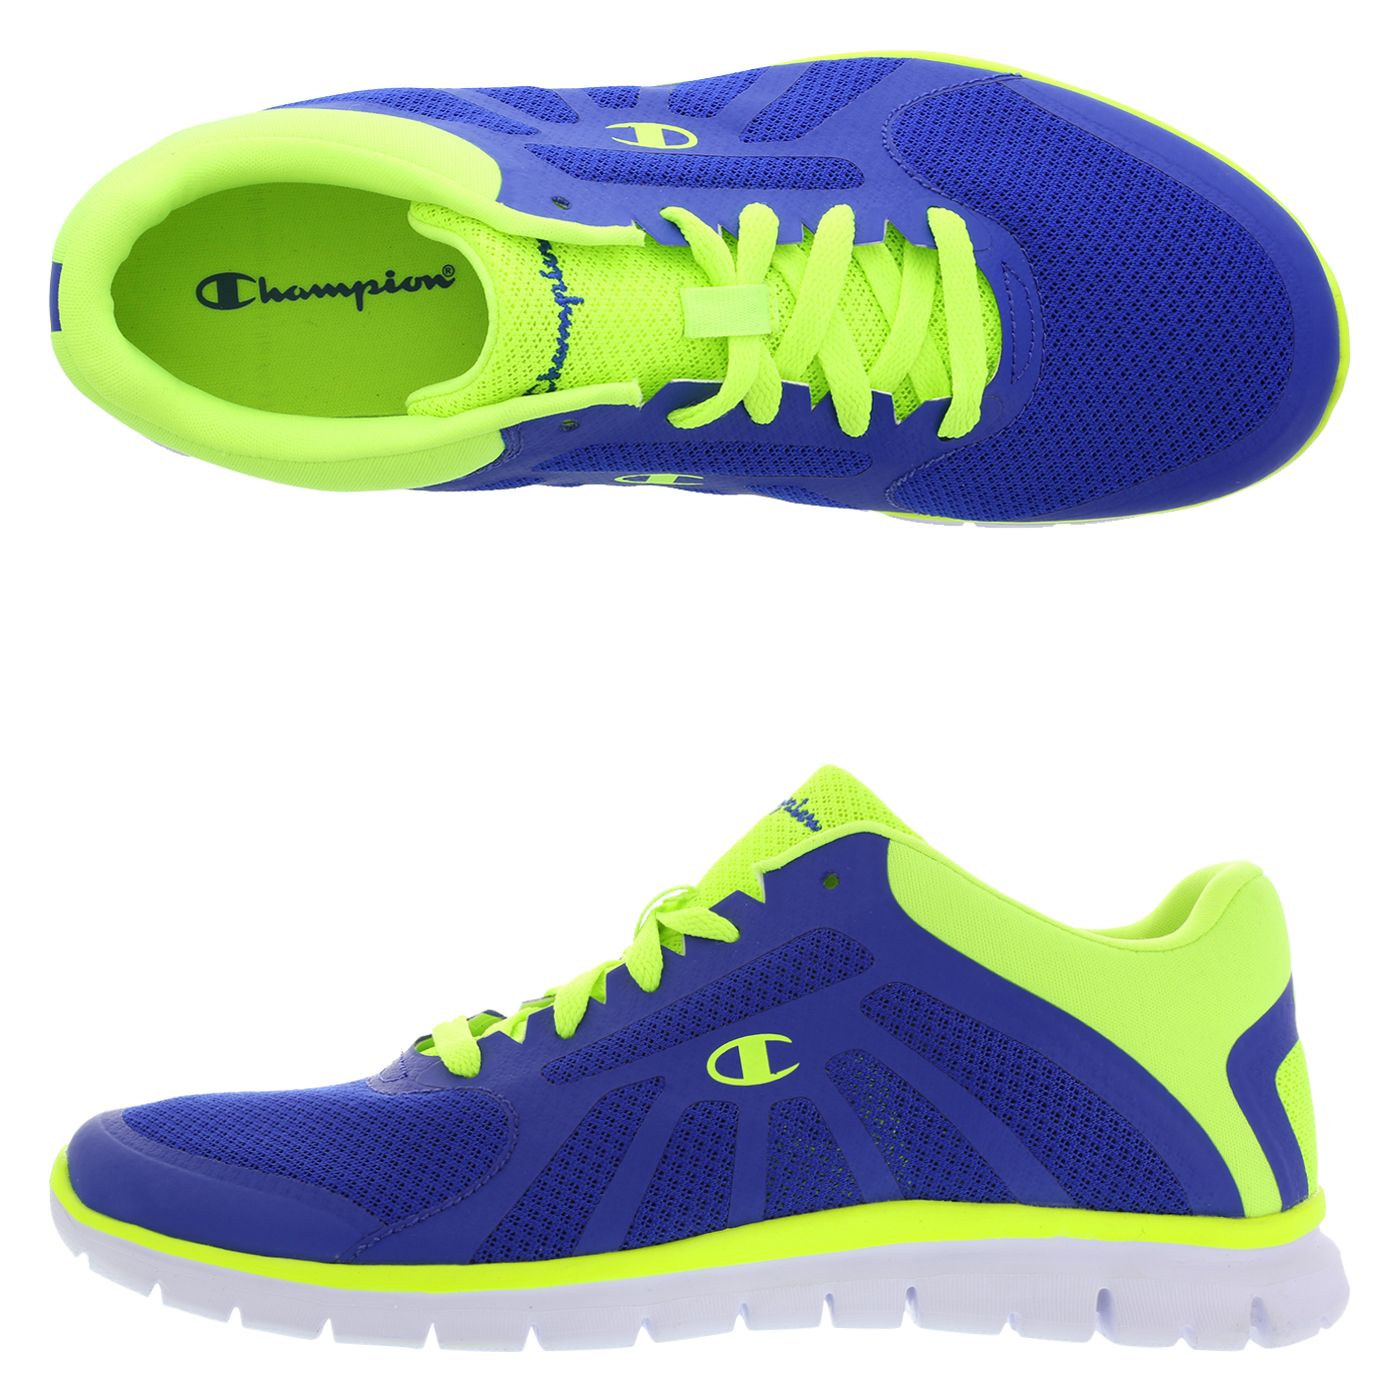 Neon sneakers, Champion shoes, Sneakers